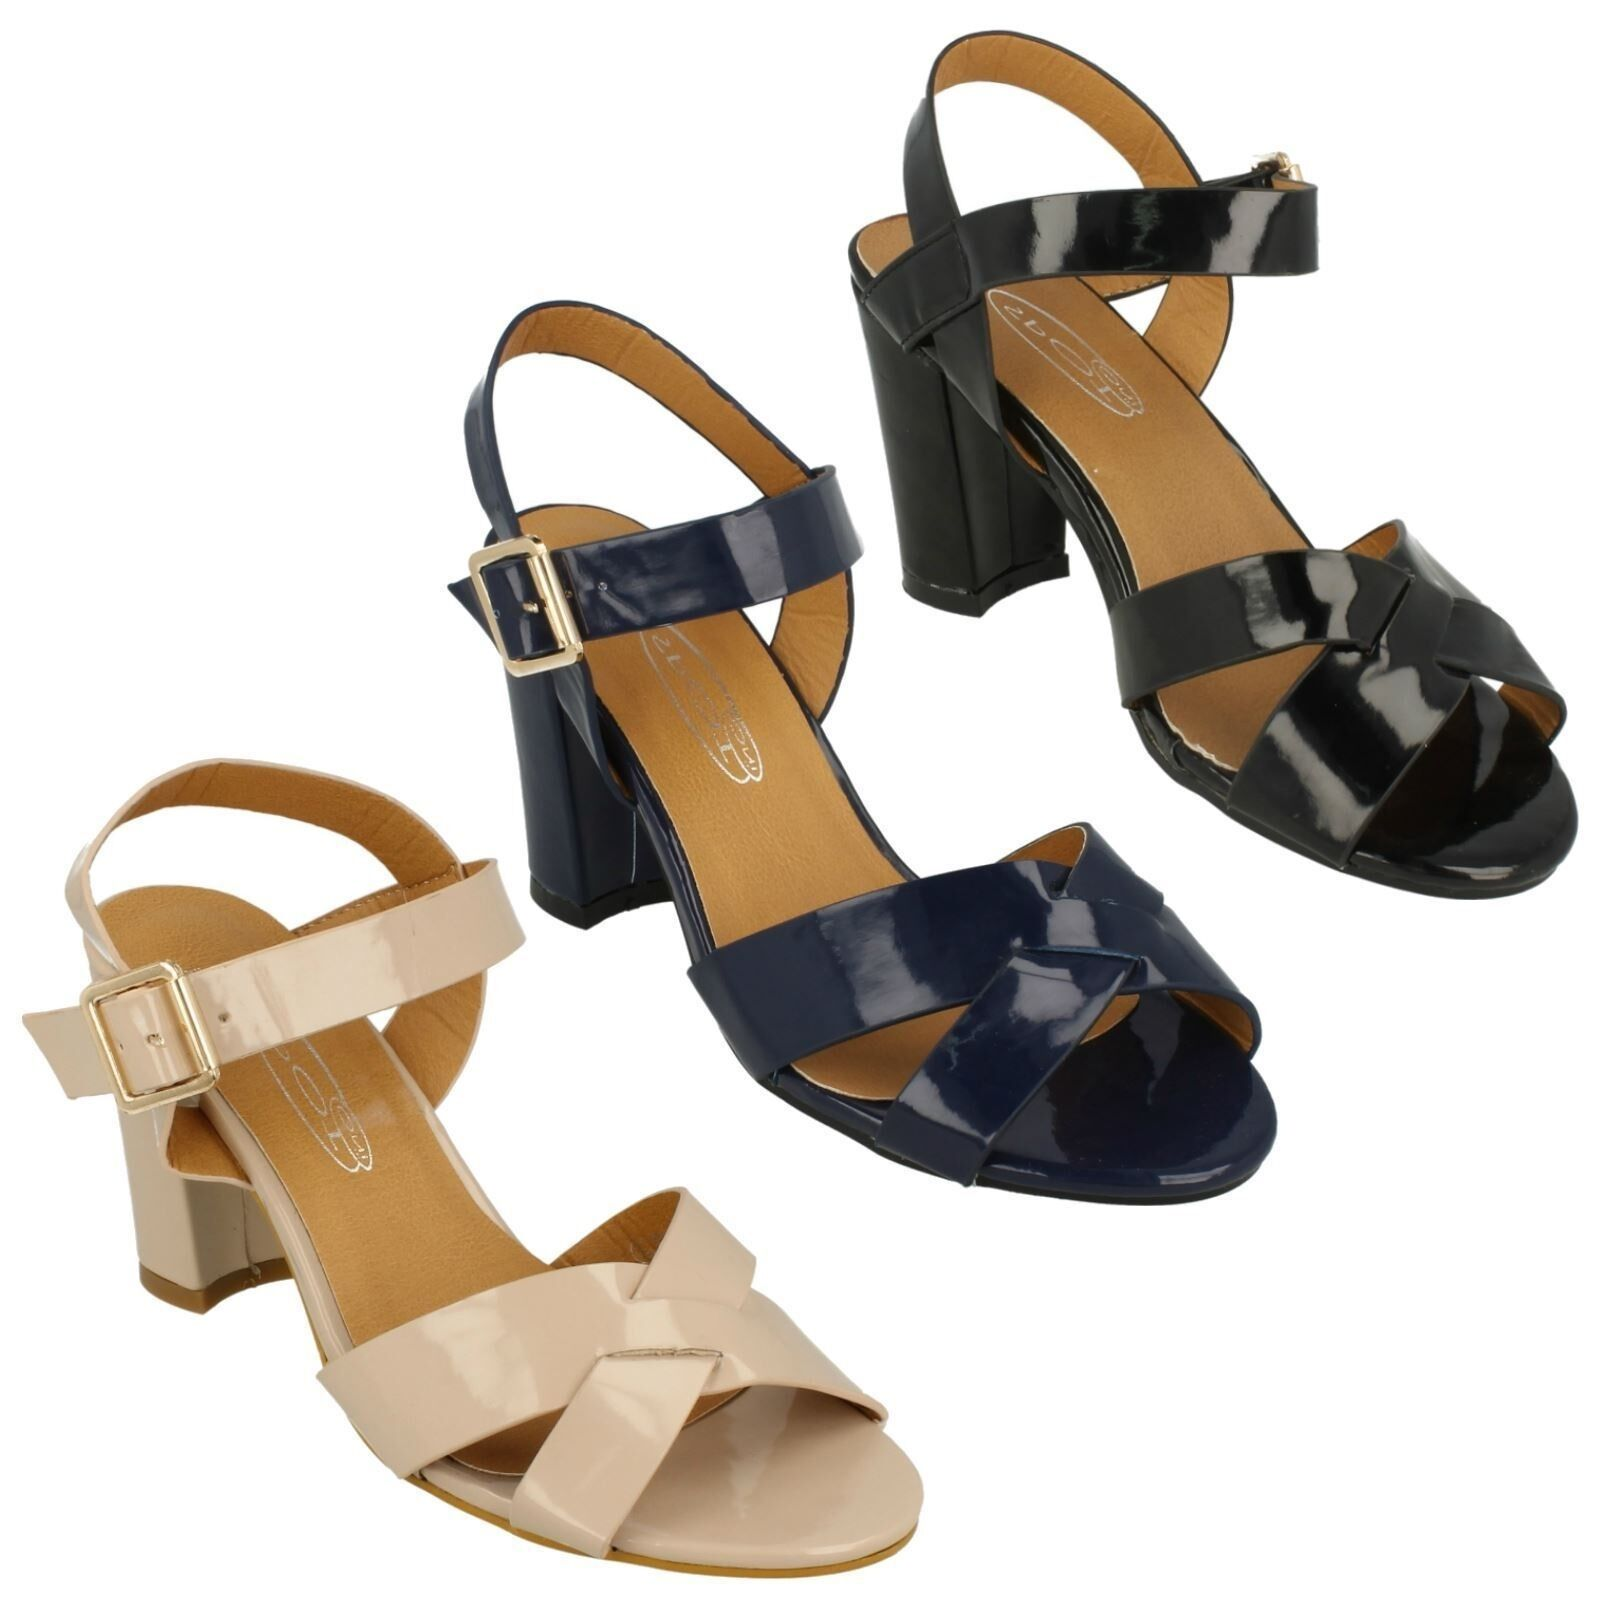 LADIES SPOT EVENING ON HIGH BLOCK HEEL BUCKLE STRAP EVENING SPOT SUMMER SANDALS F10170 9a36d4